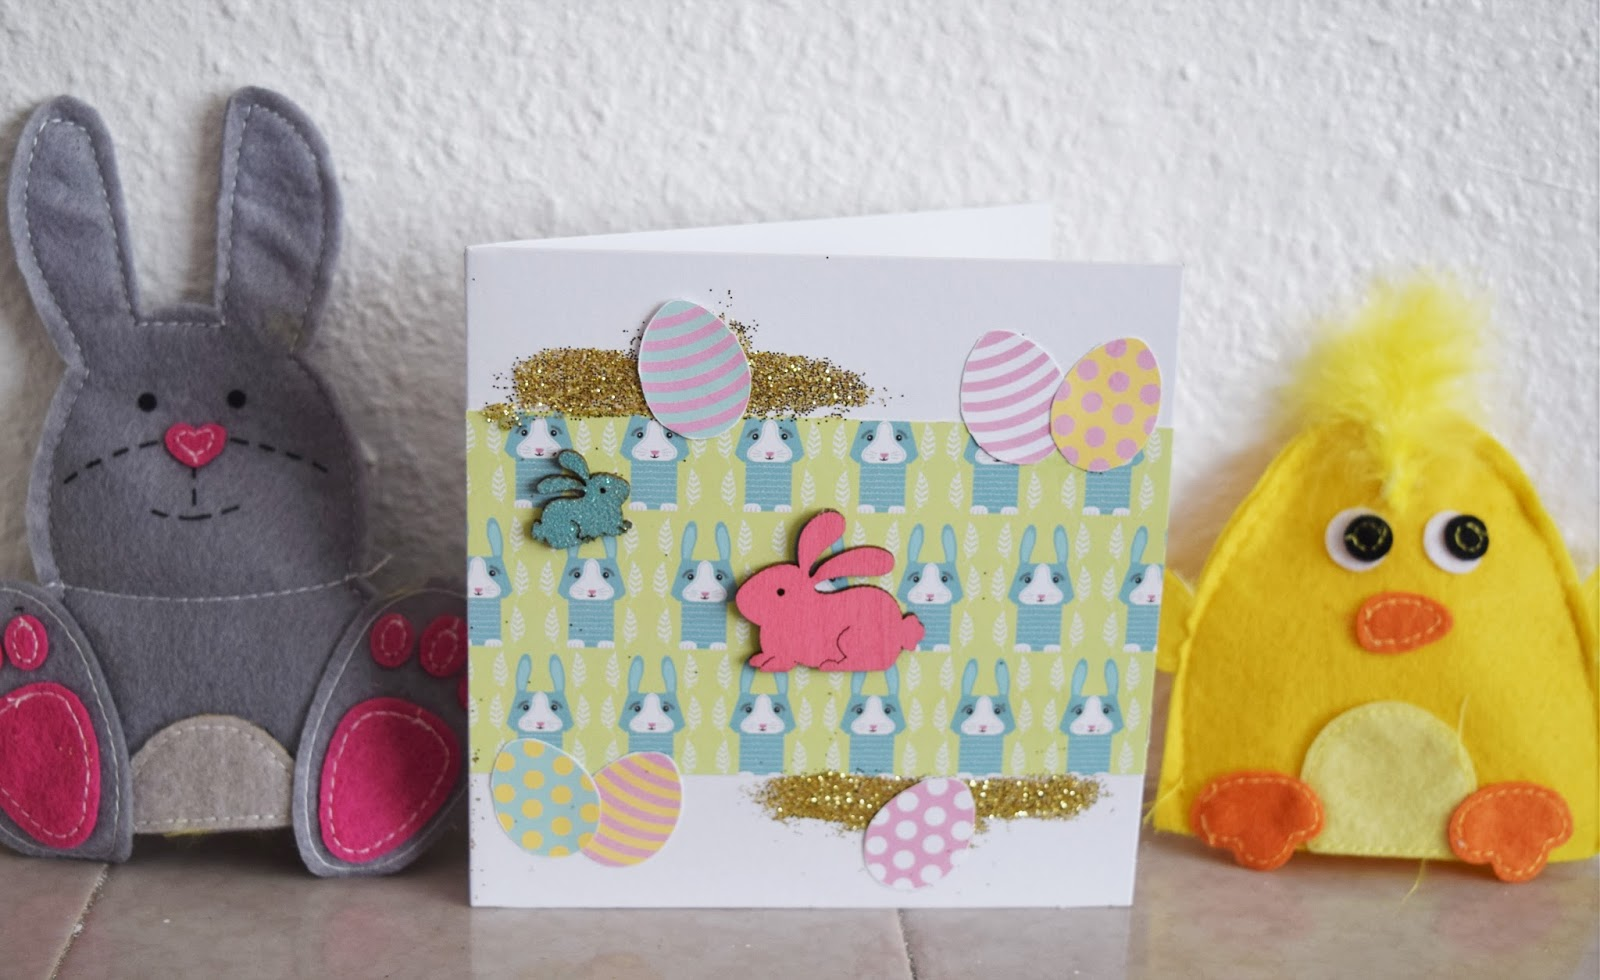 DIY EASTER CARDS A Life With Frills – Make Your Own Easter Cards